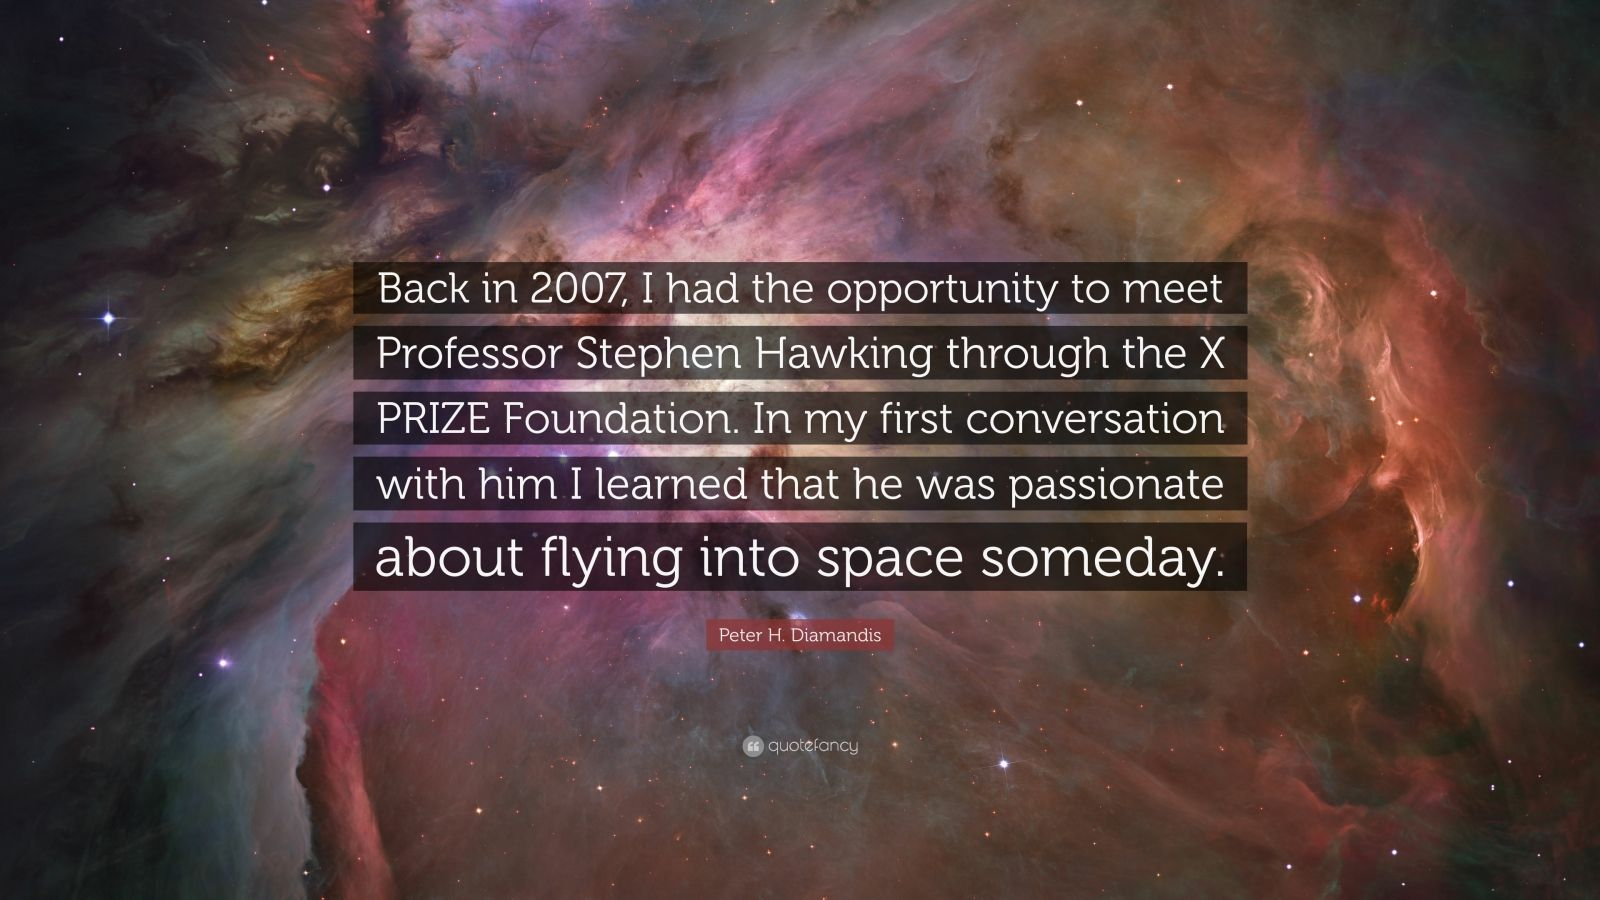 """Peter H. Diamandis Quote: """"Back in 2007, I had the opportunity to meet Professor Stephen Hawking through the X PRIZE Foundation. In my first conversation with him I learned that he was passionate about flying into space someday."""""""